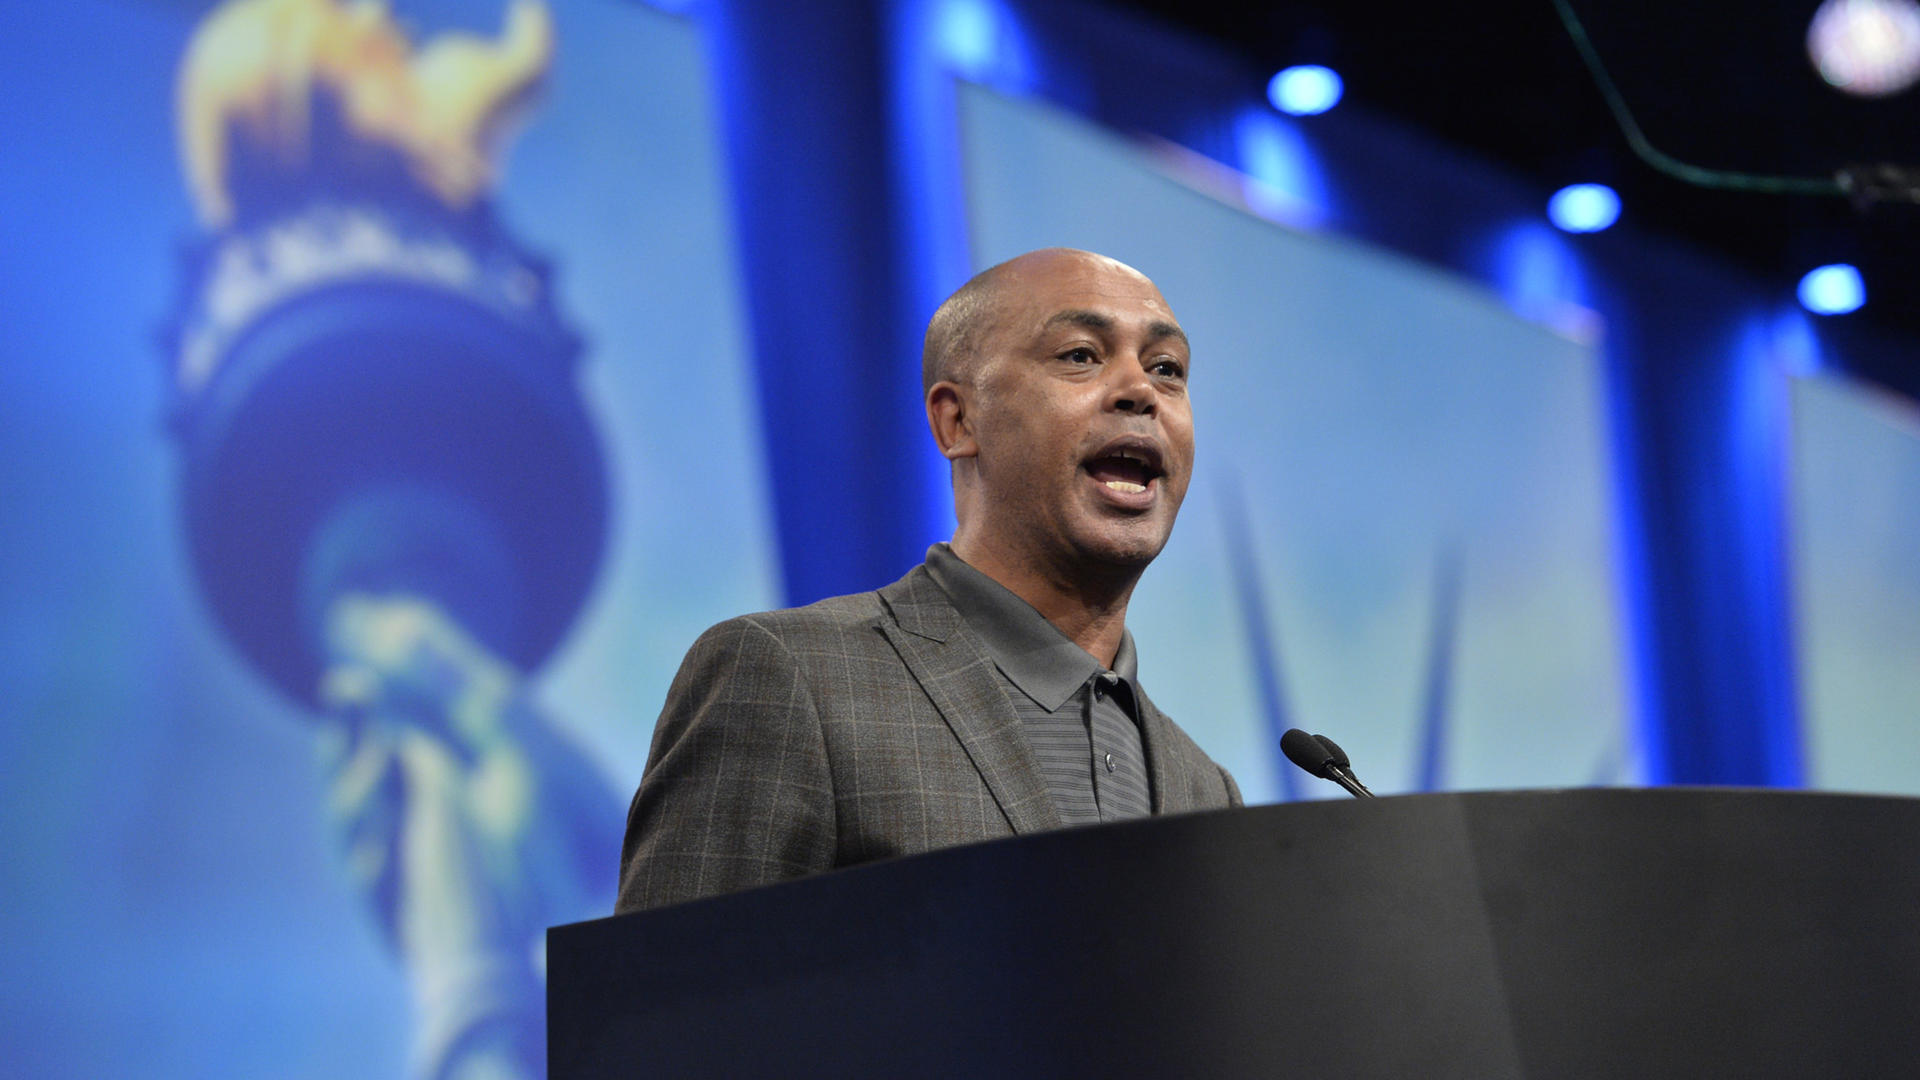 Tefere Gebre speaks at a podium at an AFL-CIO event